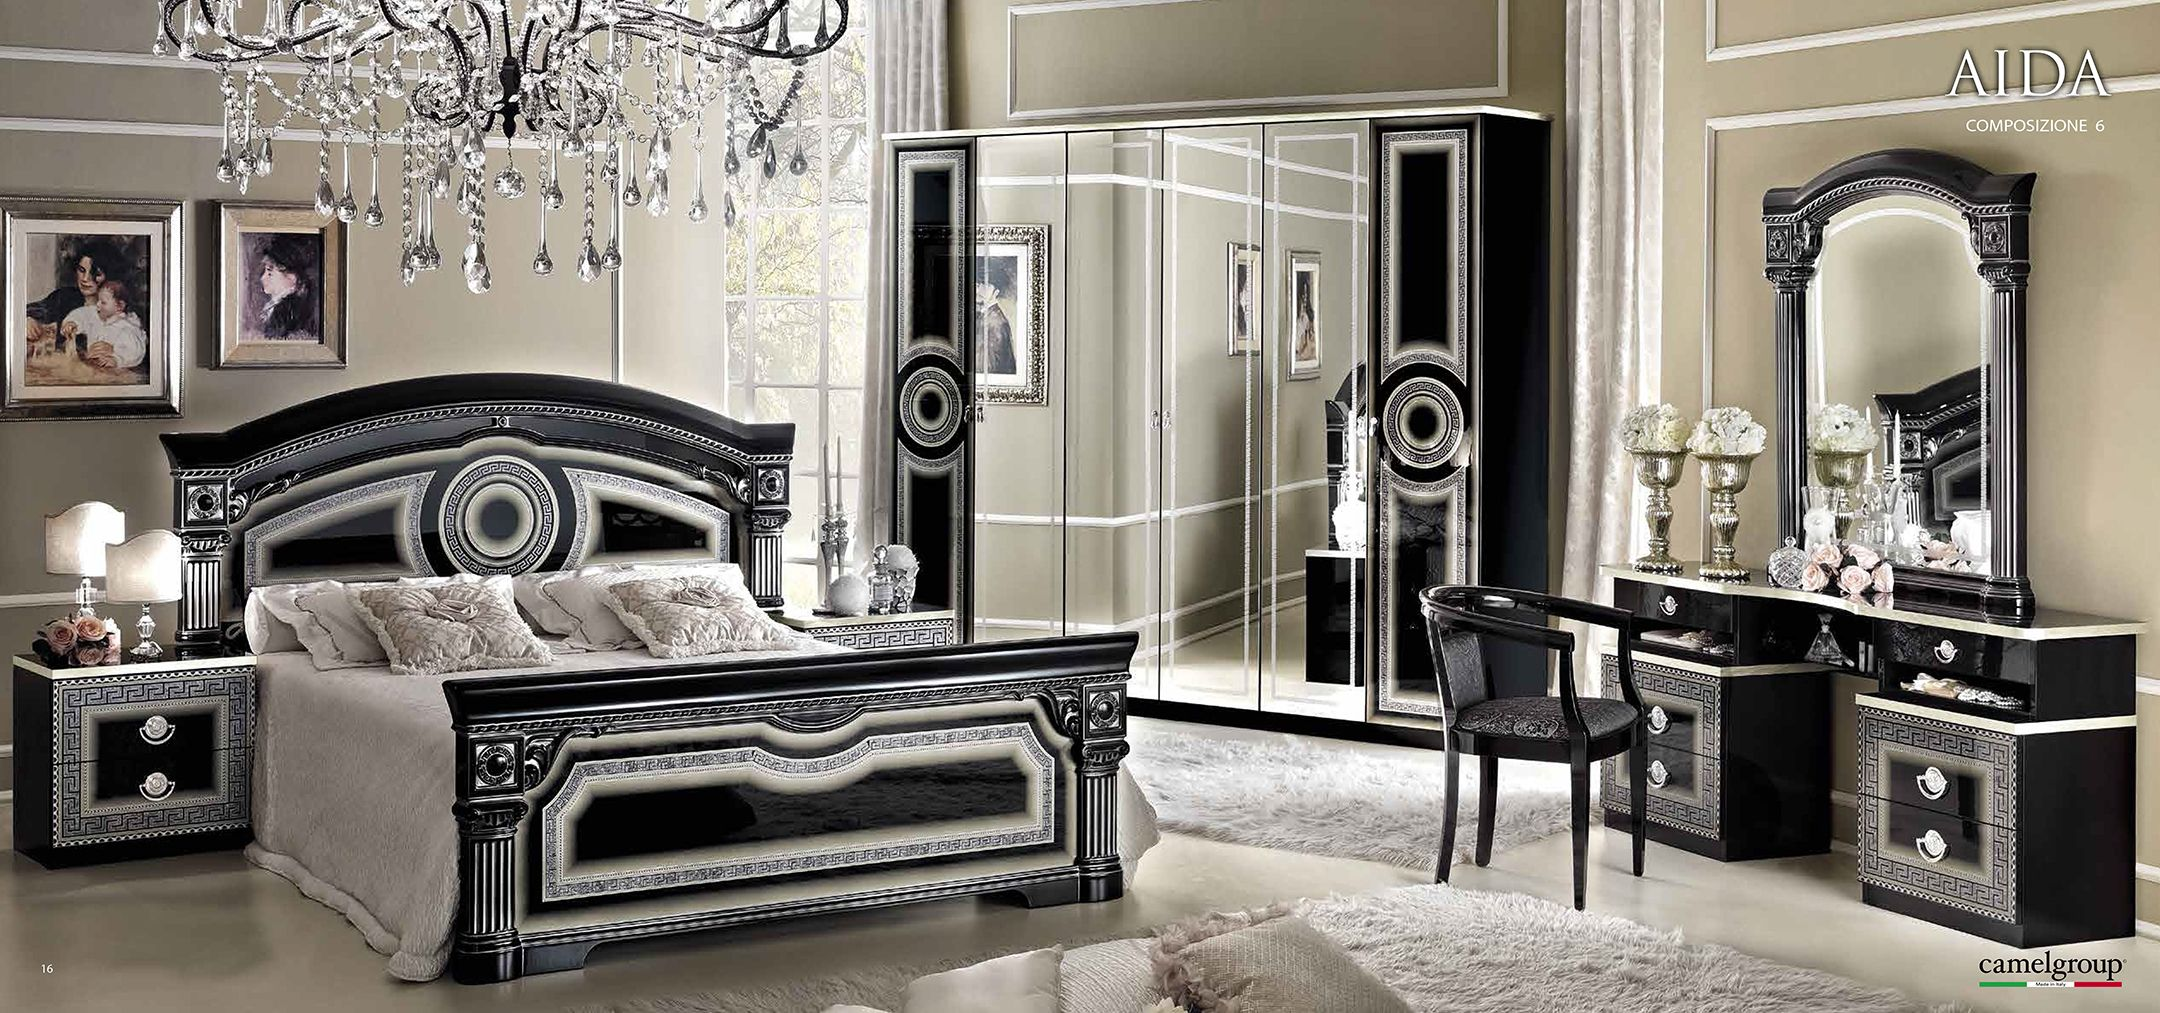 Aida Black w/Silver, Camelgroup Italy, Classic Bedrooms, Bedroom ...